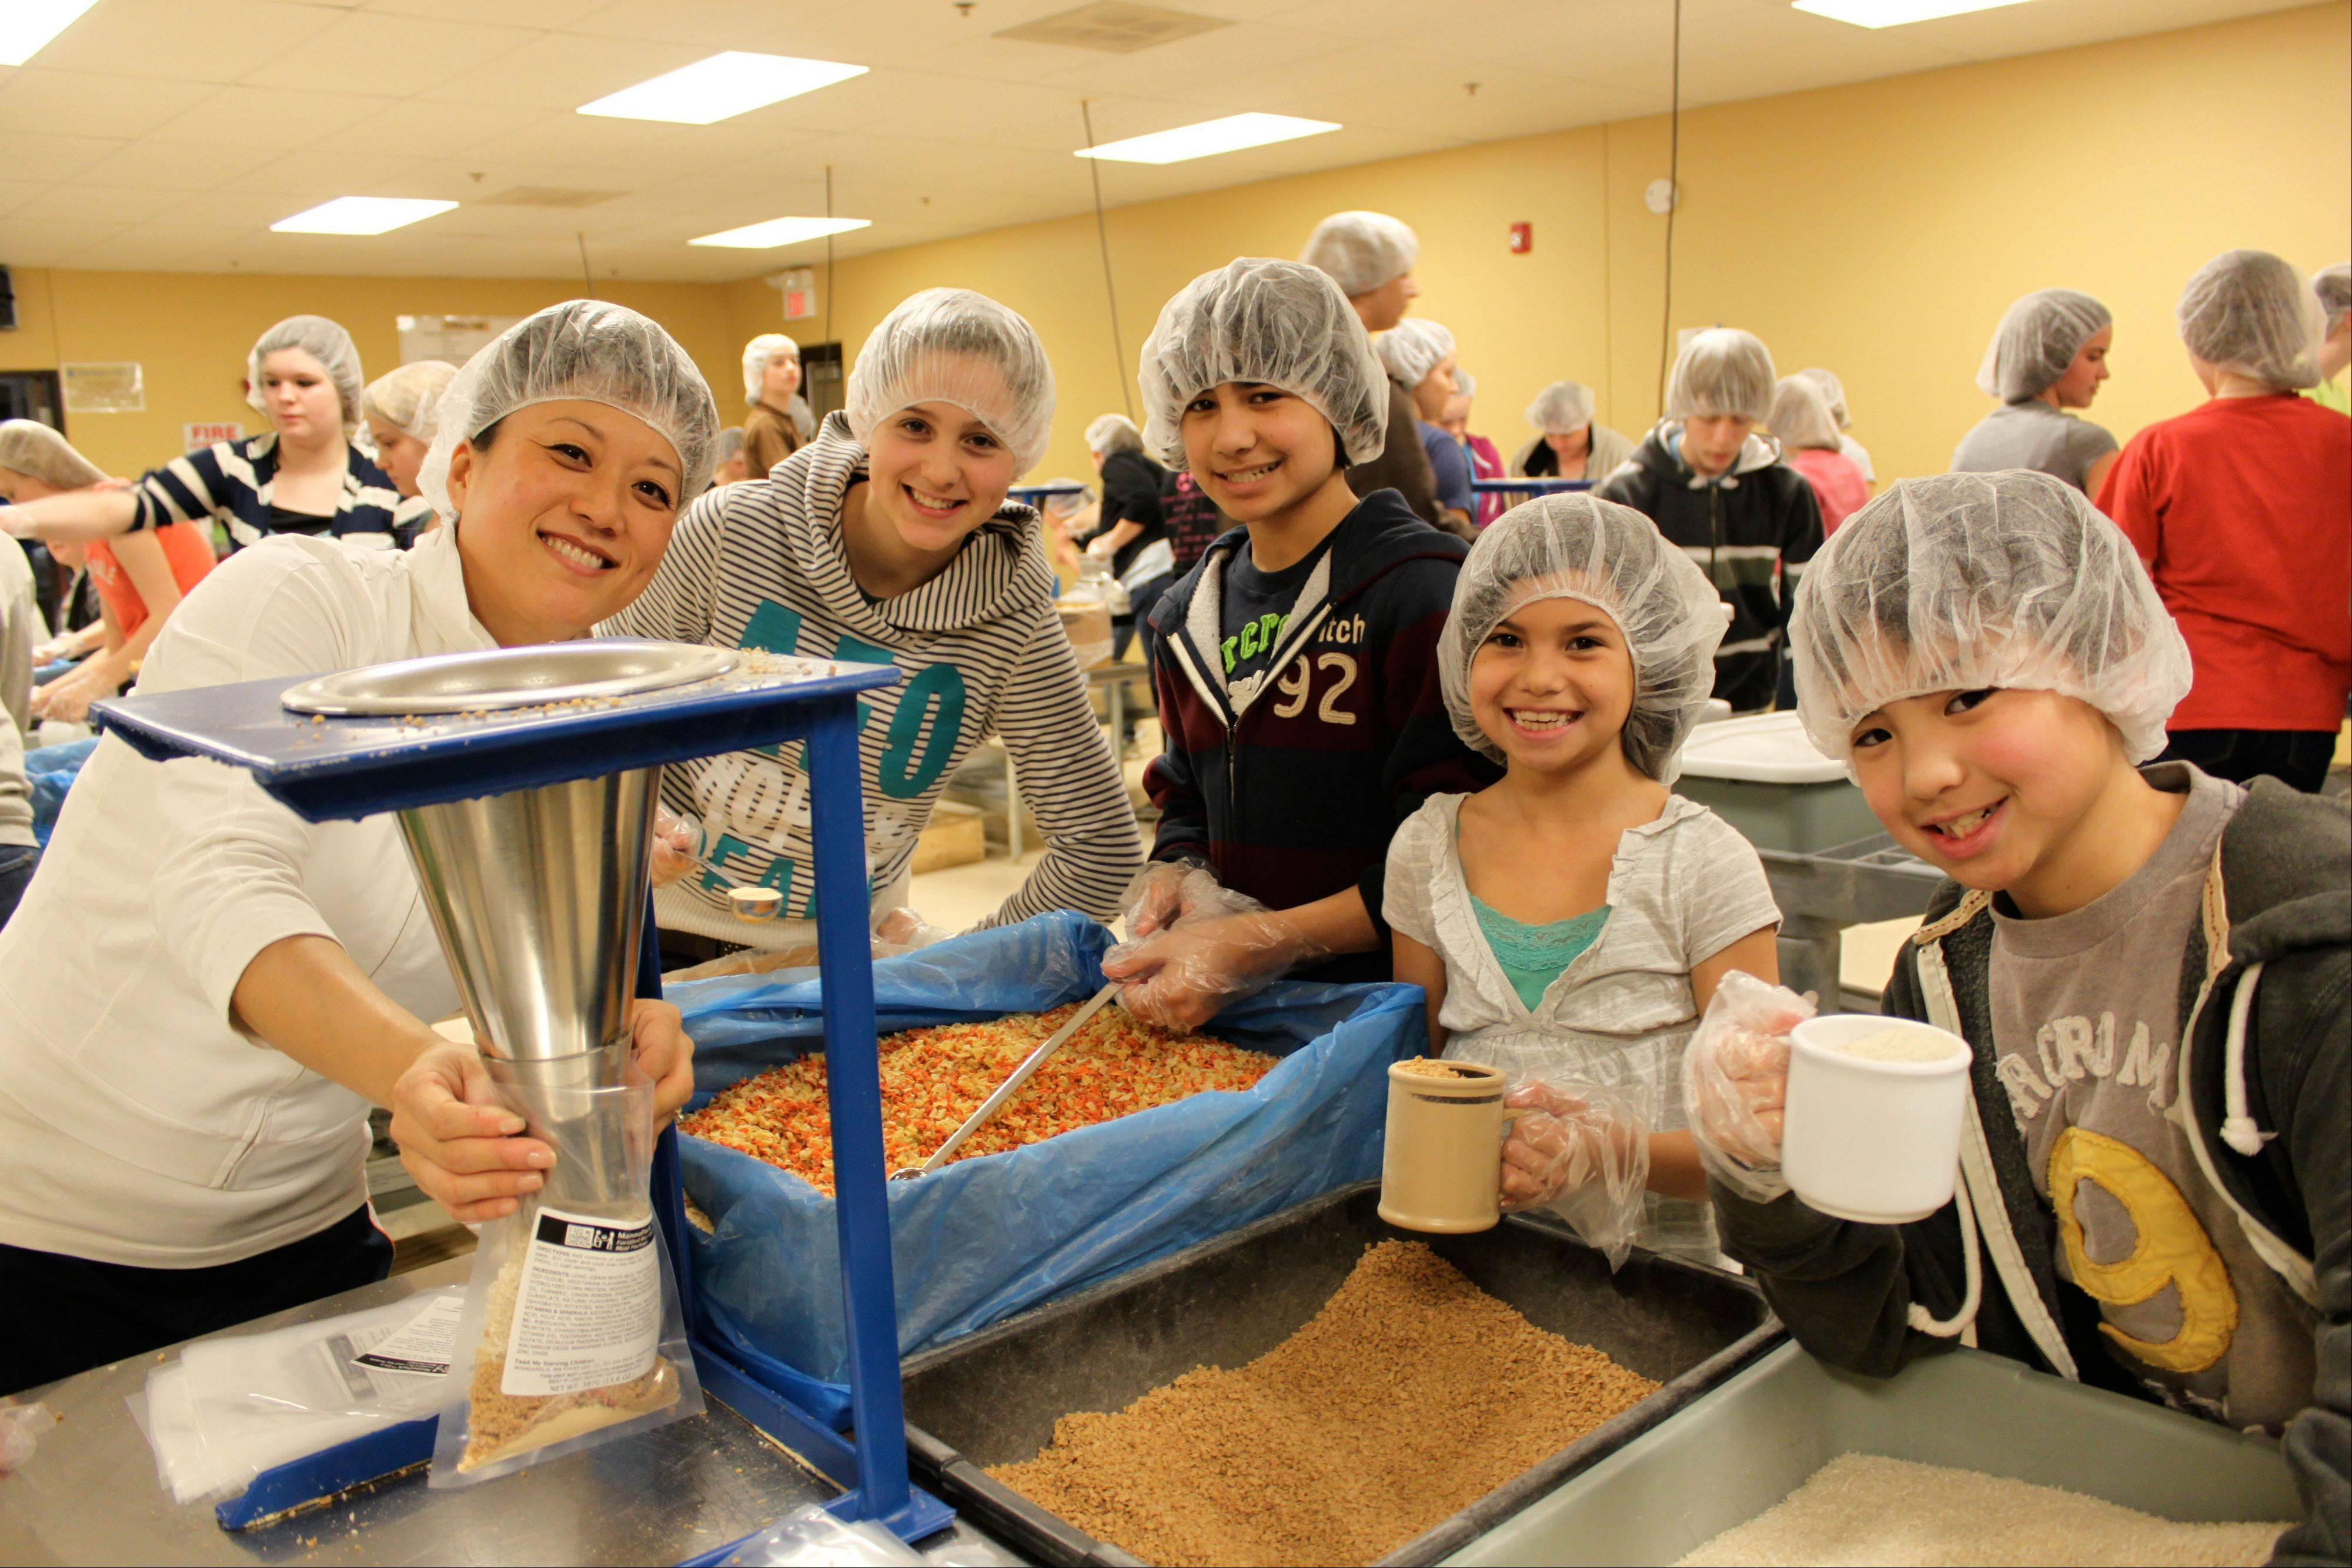 Families can sign up for two-hour sessions at Feed My Starving Children.